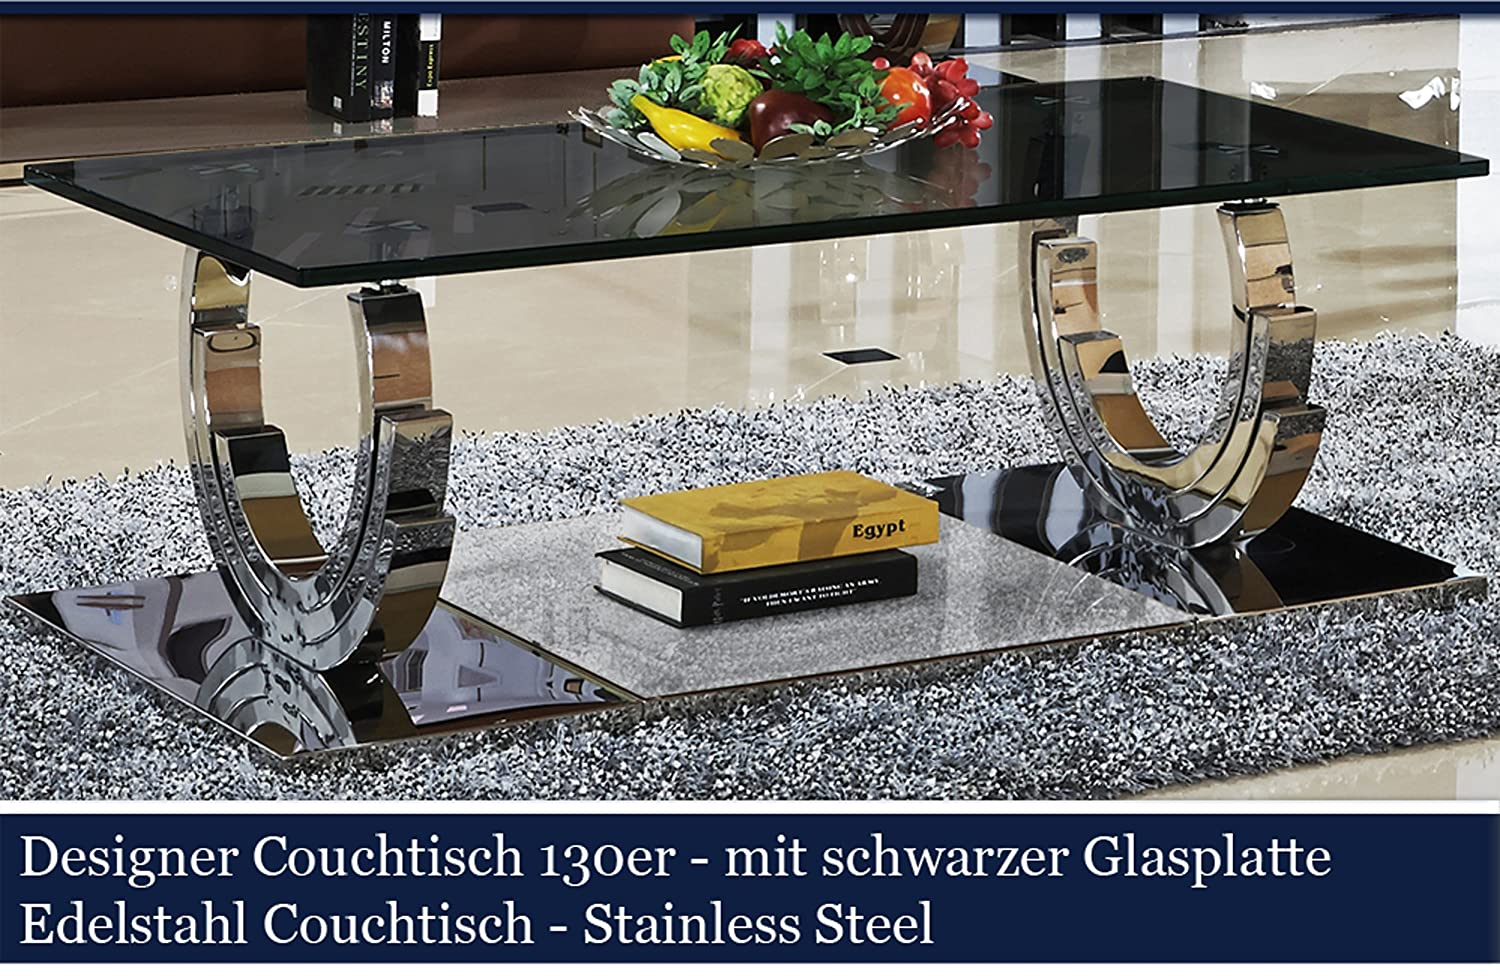 designer couchtisch edelstahl wohnzimmertisch glastisch glas hochglanz schwarzer glasplatte. Black Bedroom Furniture Sets. Home Design Ideas